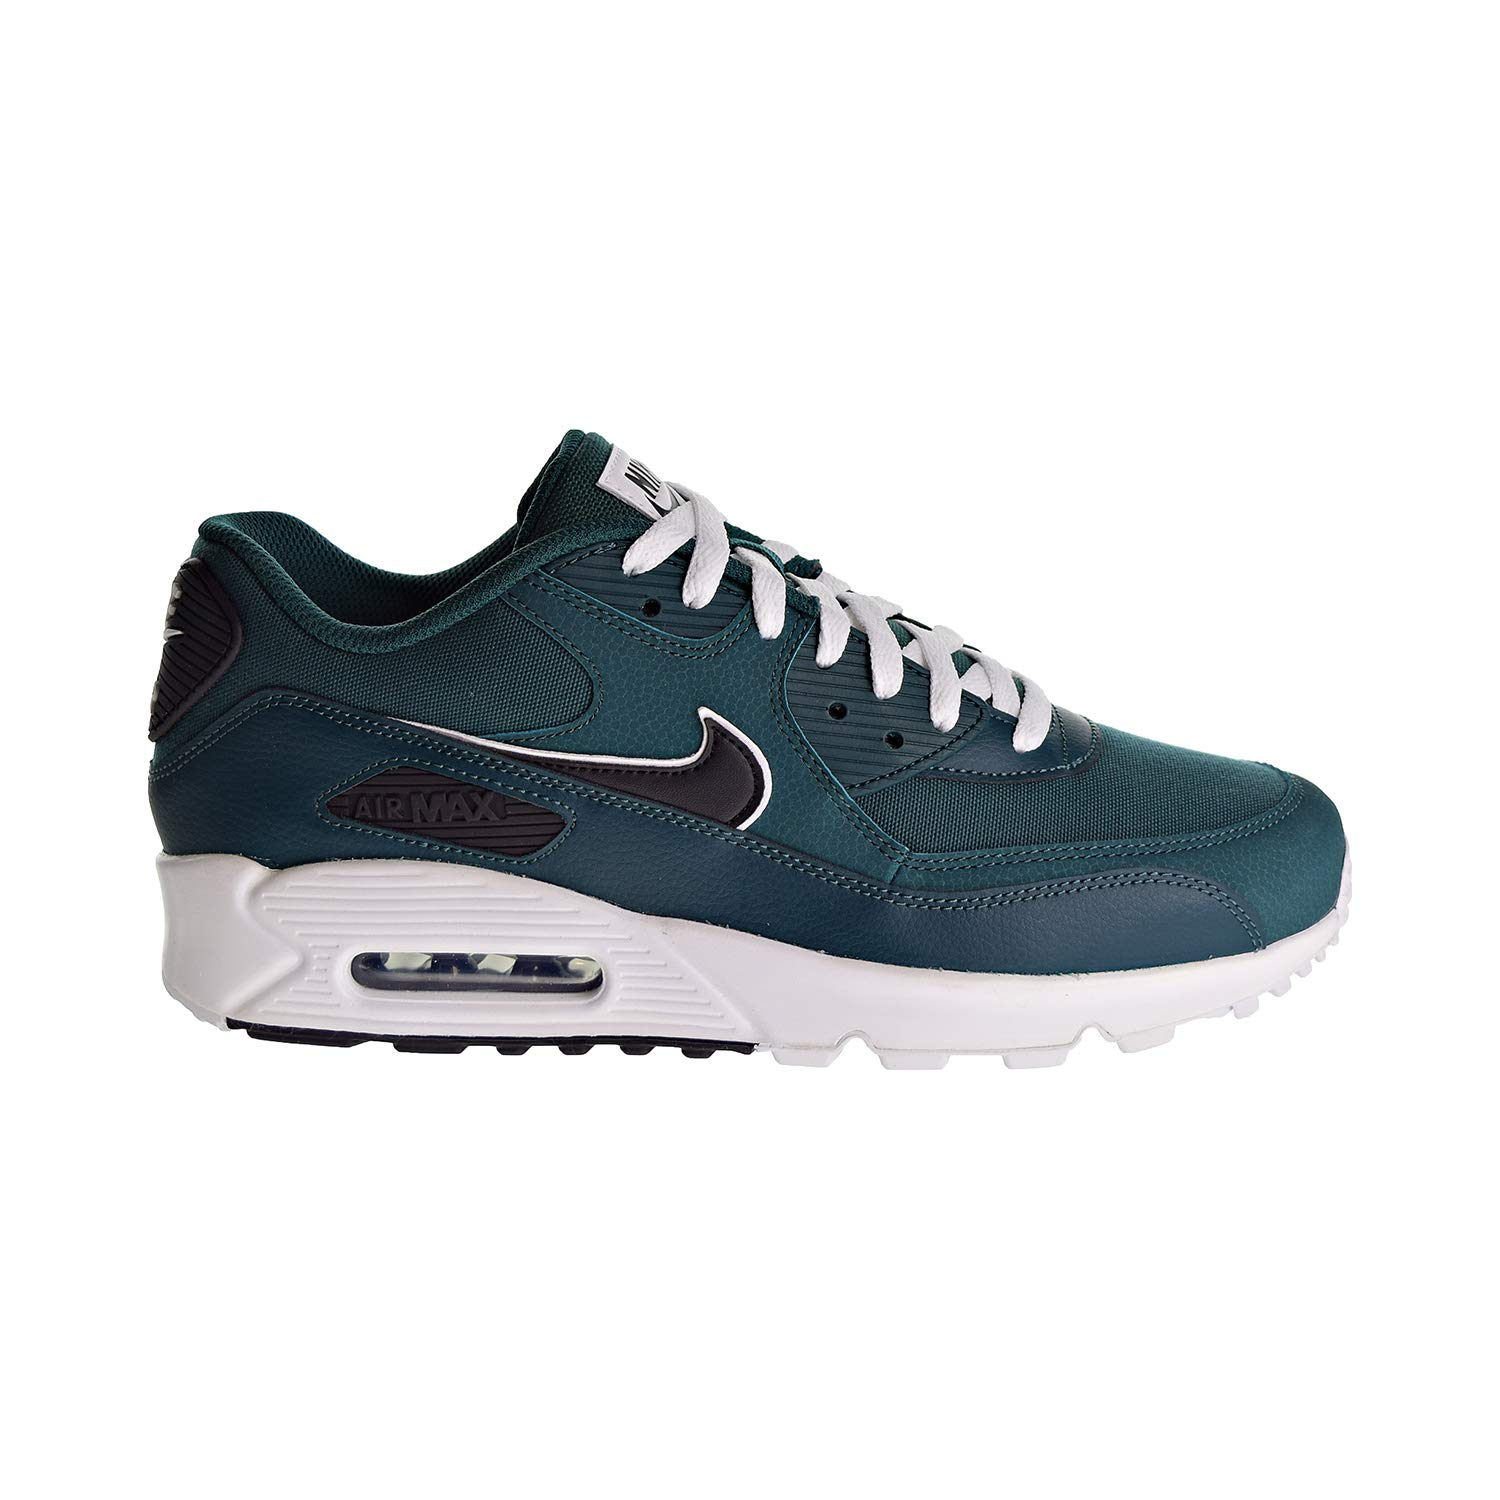 hot sales aaac2 09681 Galleon - NIKE Mens Air Max 90 Essential Running Shoes Rainforest Oil Grey White  AJ1285-301 Size 13